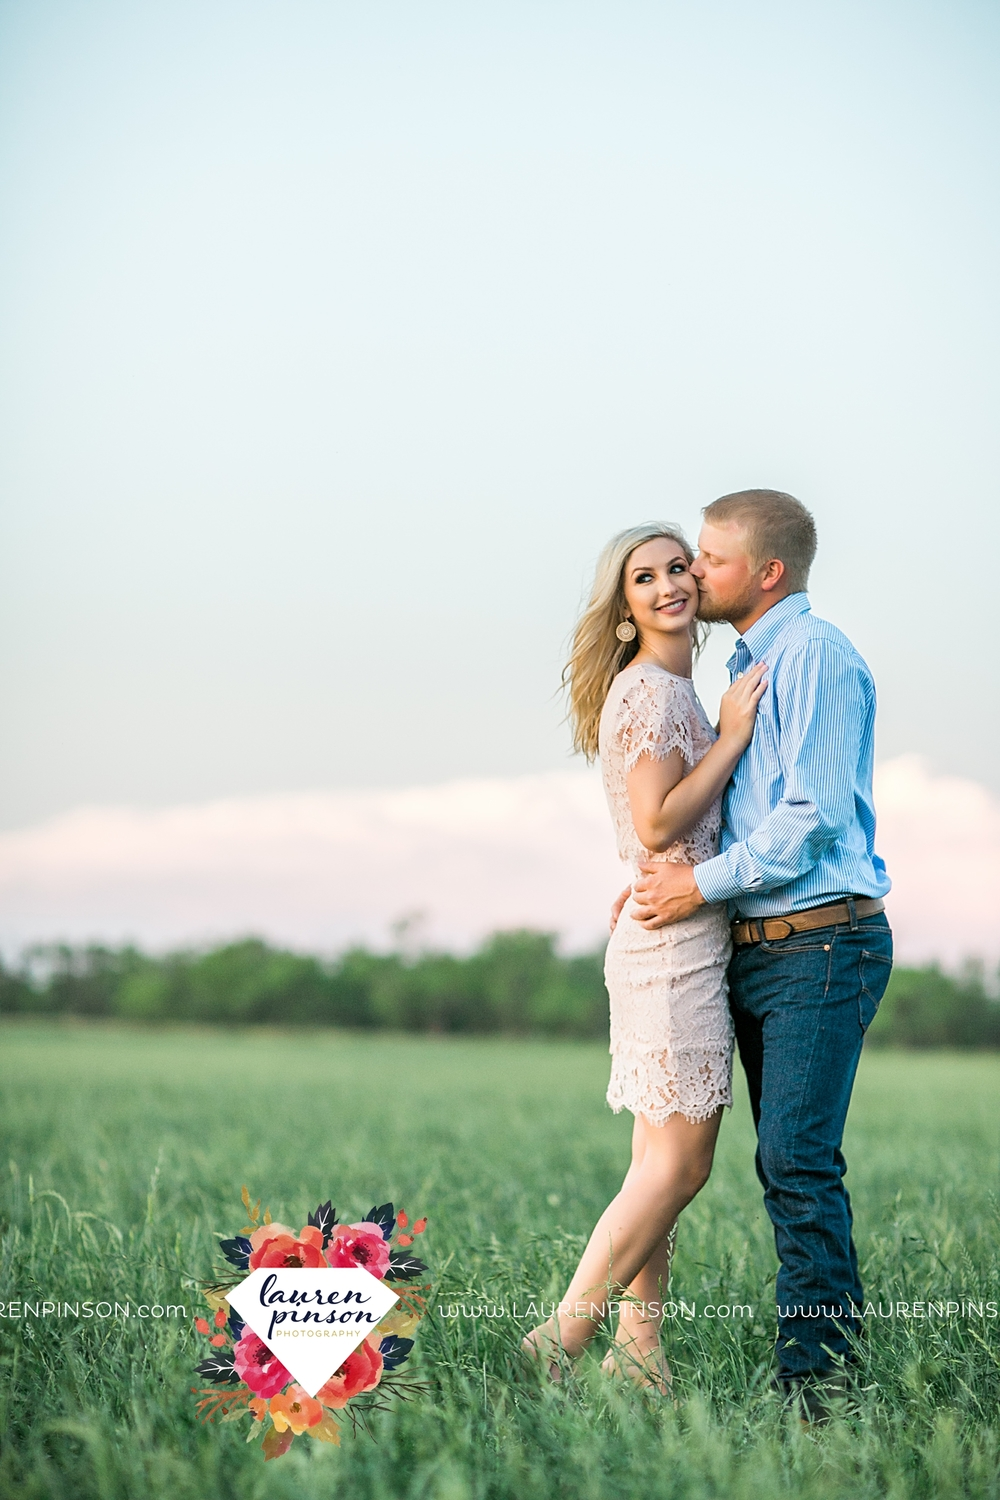 wichita-falls-texas-wedding-photographer-scotland-texas-engagement-session-country-barn-field-windthorst_2776.jpg